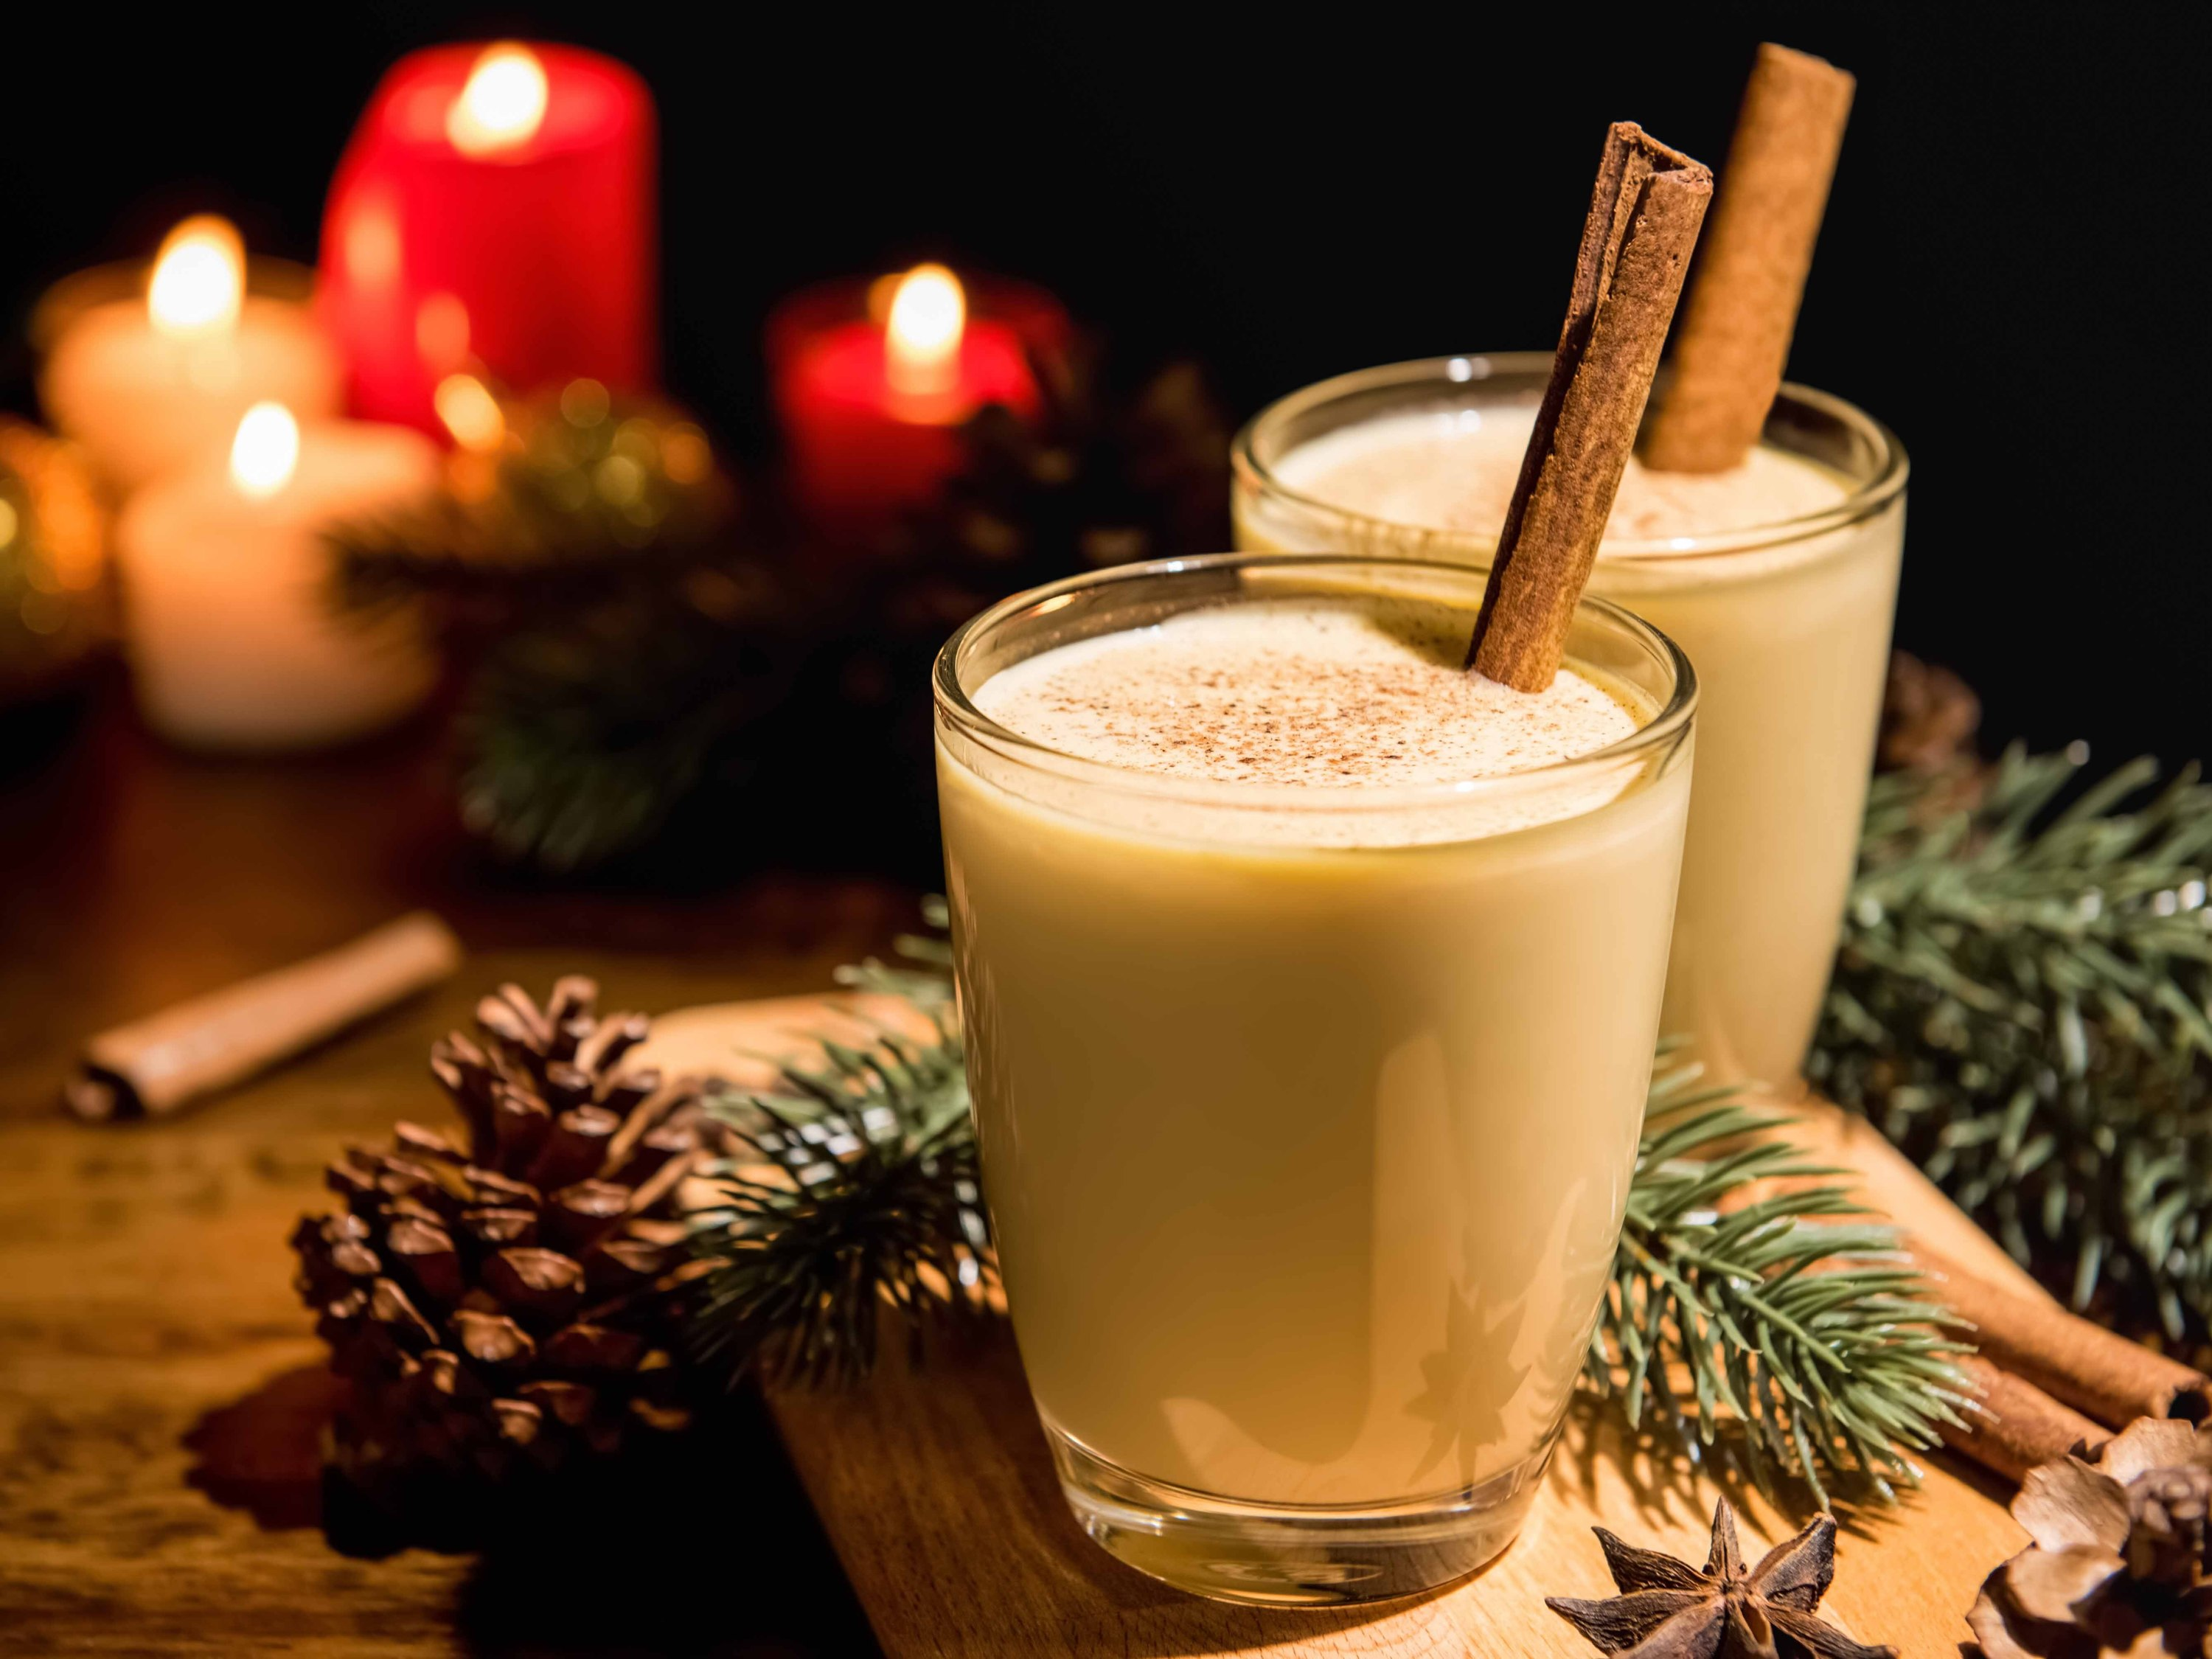 The CDC is asking everyone to hold off on the spiked eggnog this holiday season